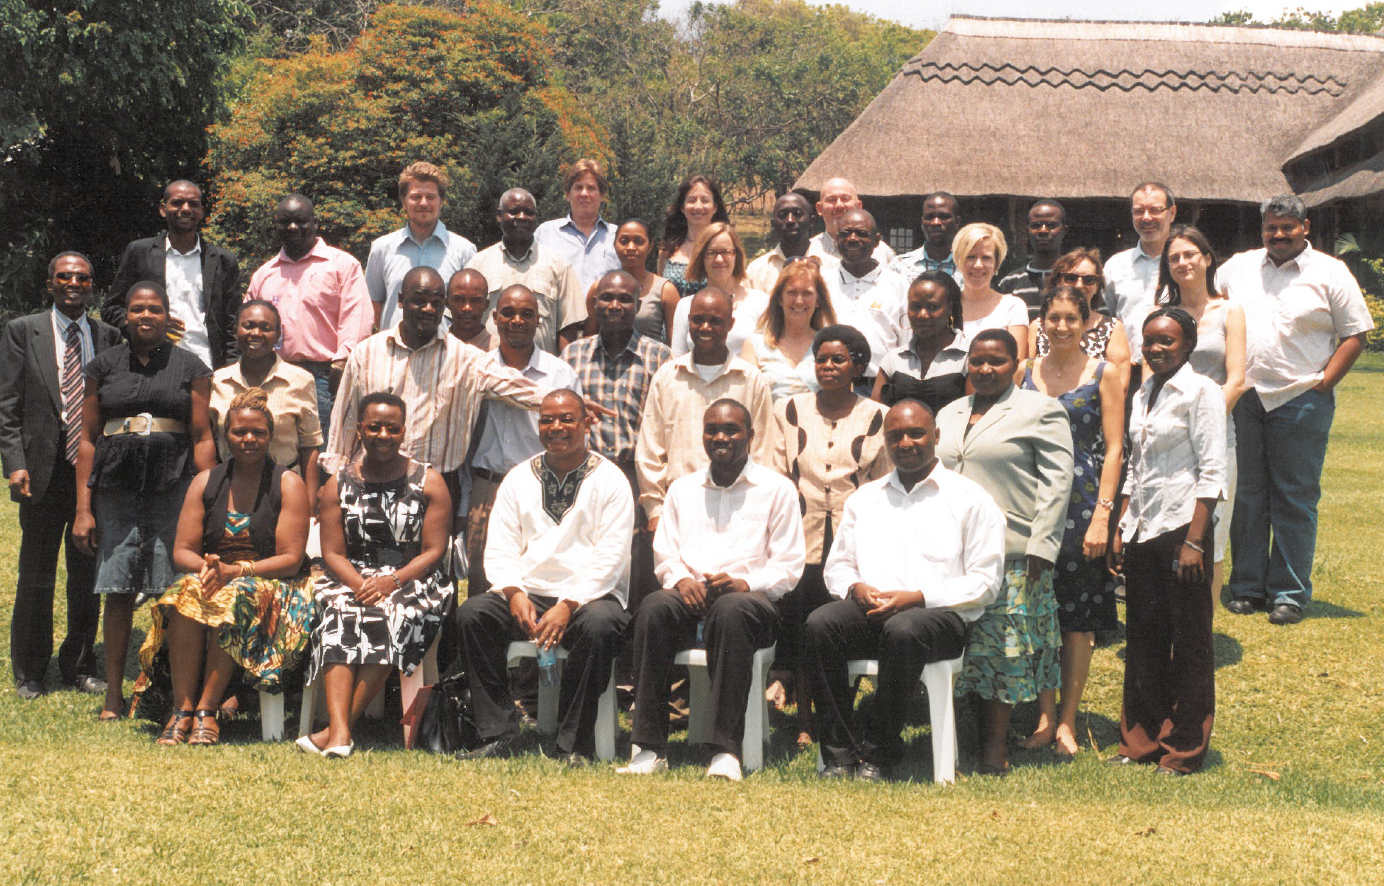 Dale and the team in Malawi